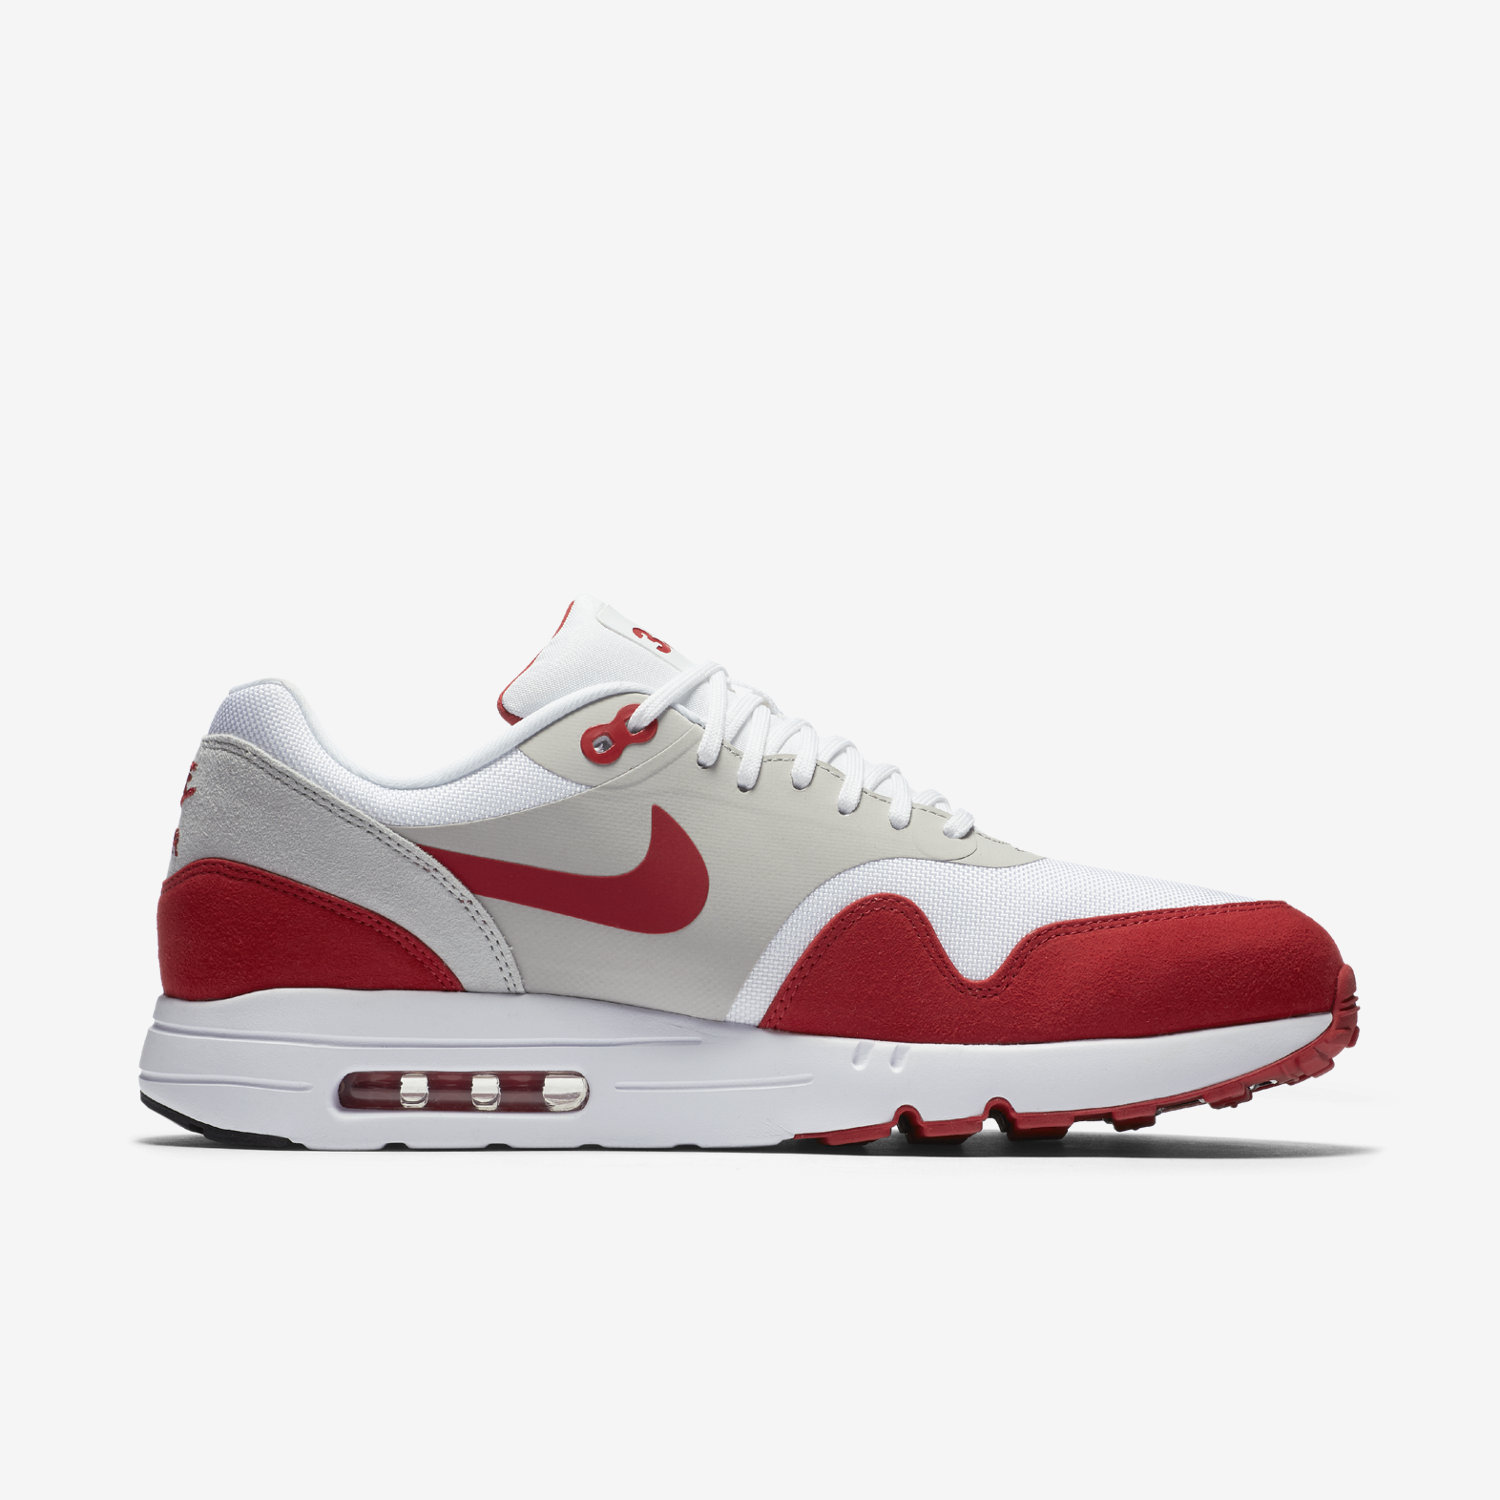 Nike Brought Back the OG Air Max 1